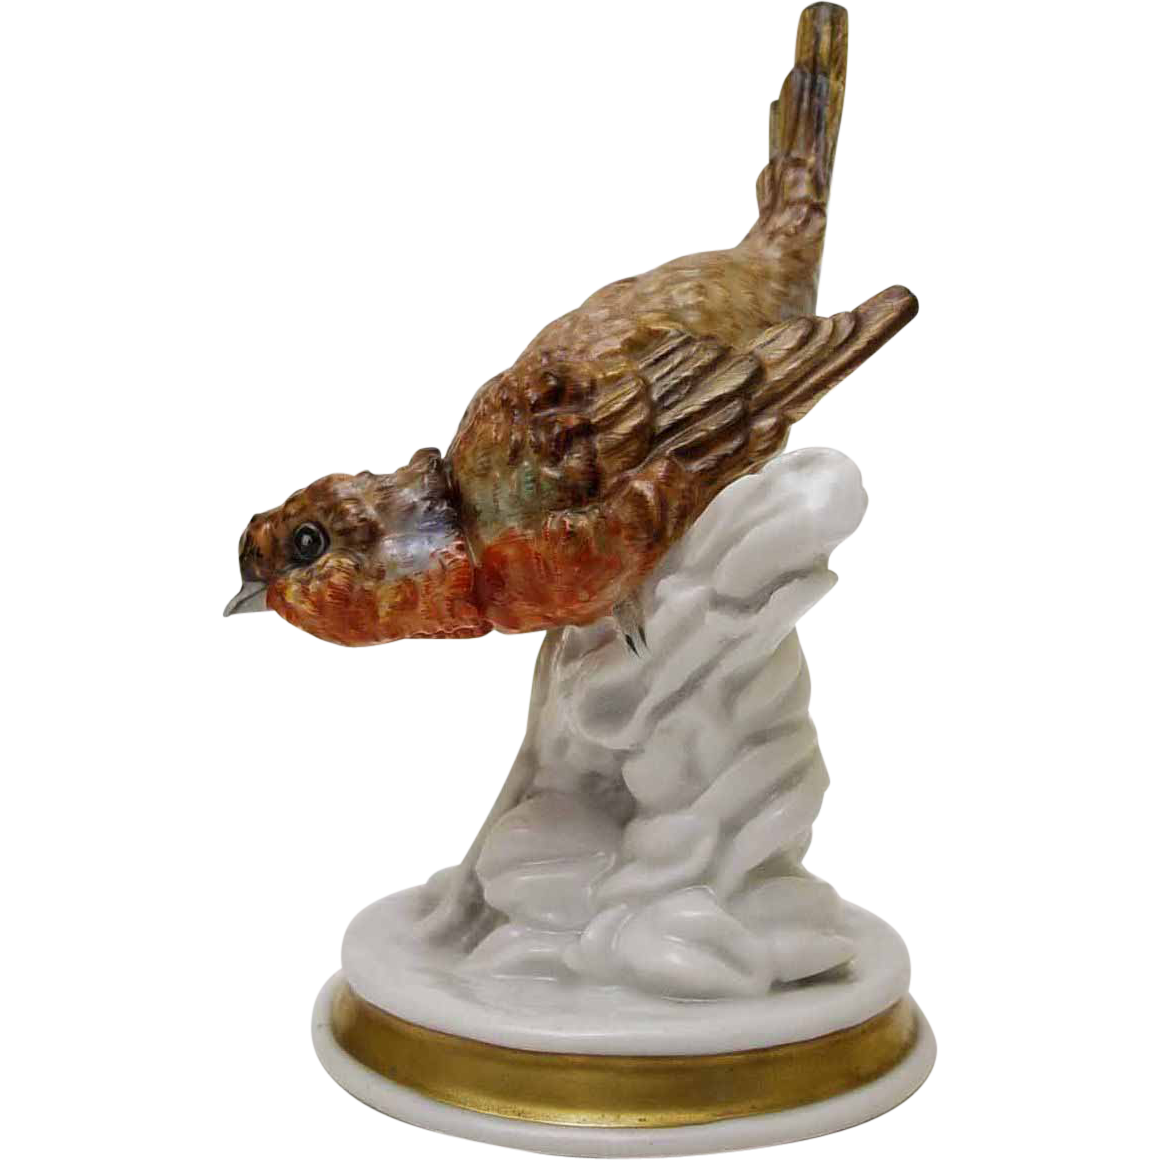 Antique Dresden Porcelain Bird Figurine - c. 19th Century, Germany